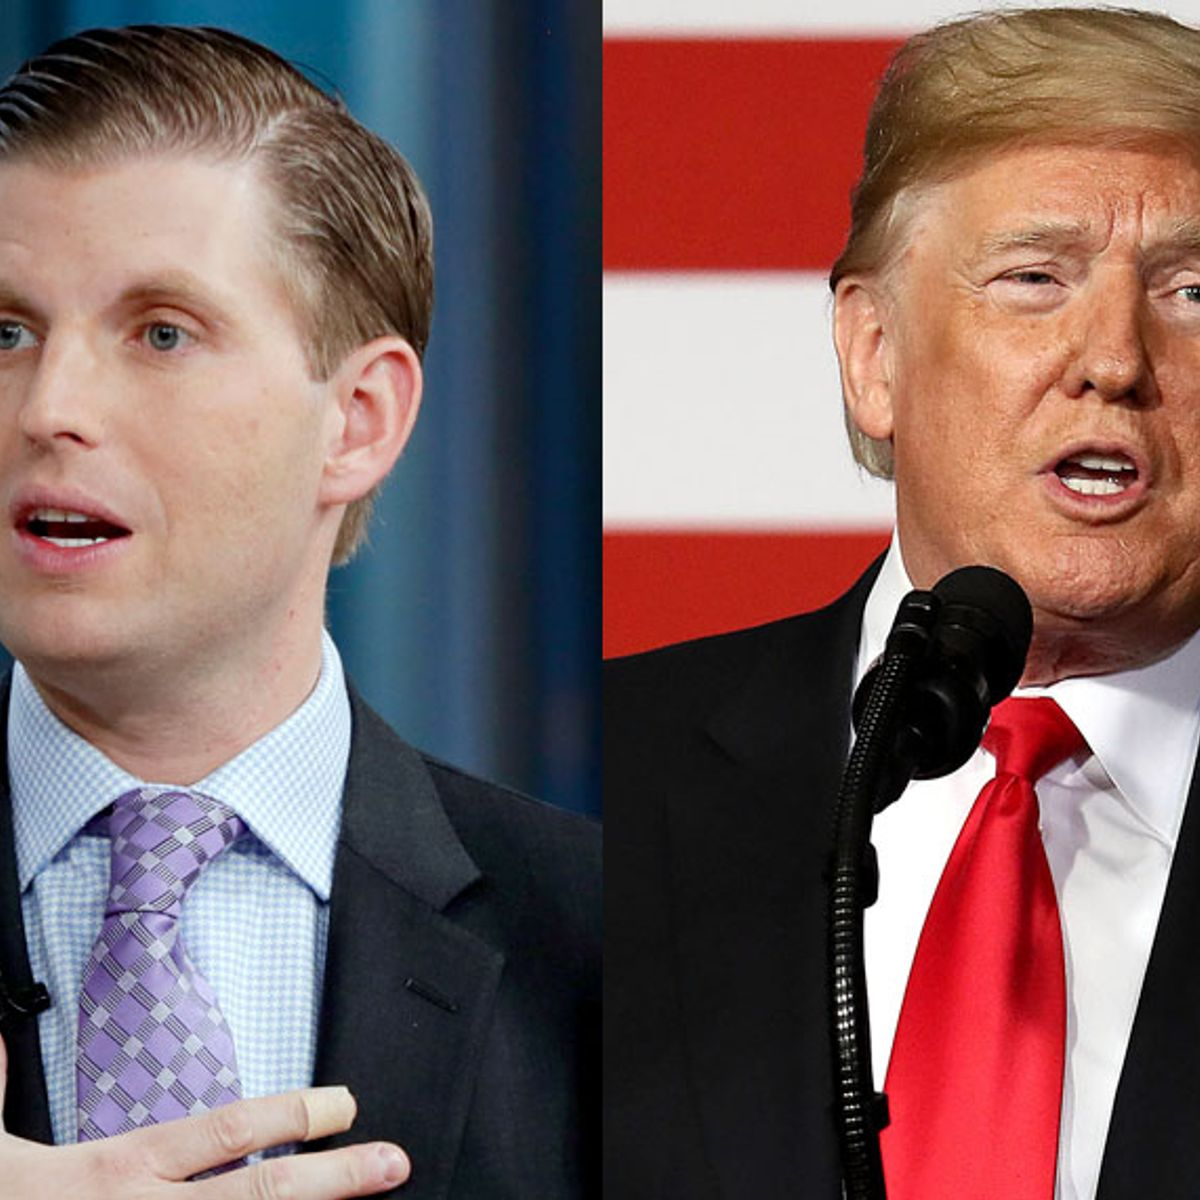 """While on Fox News, Eric Trump baselessly blames Obama for Ukraine scandal: """"It leads right to him"""""""